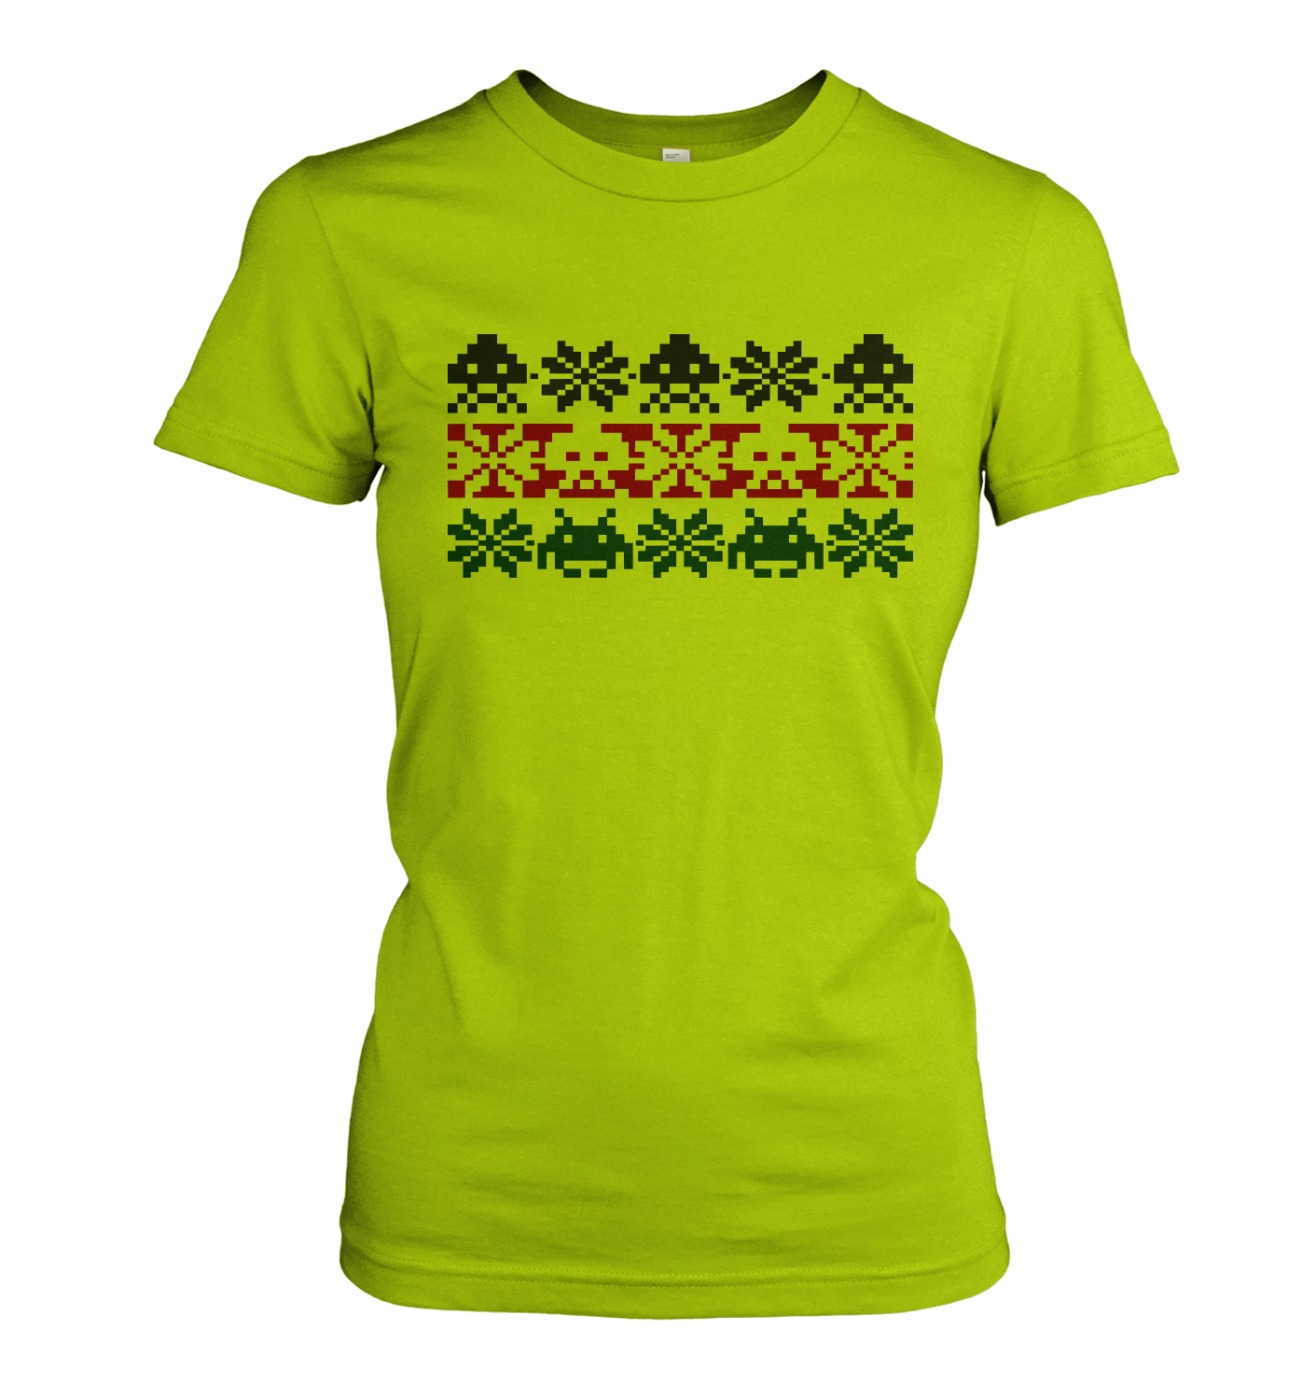 Isle Invaders women's fitted t-shirt